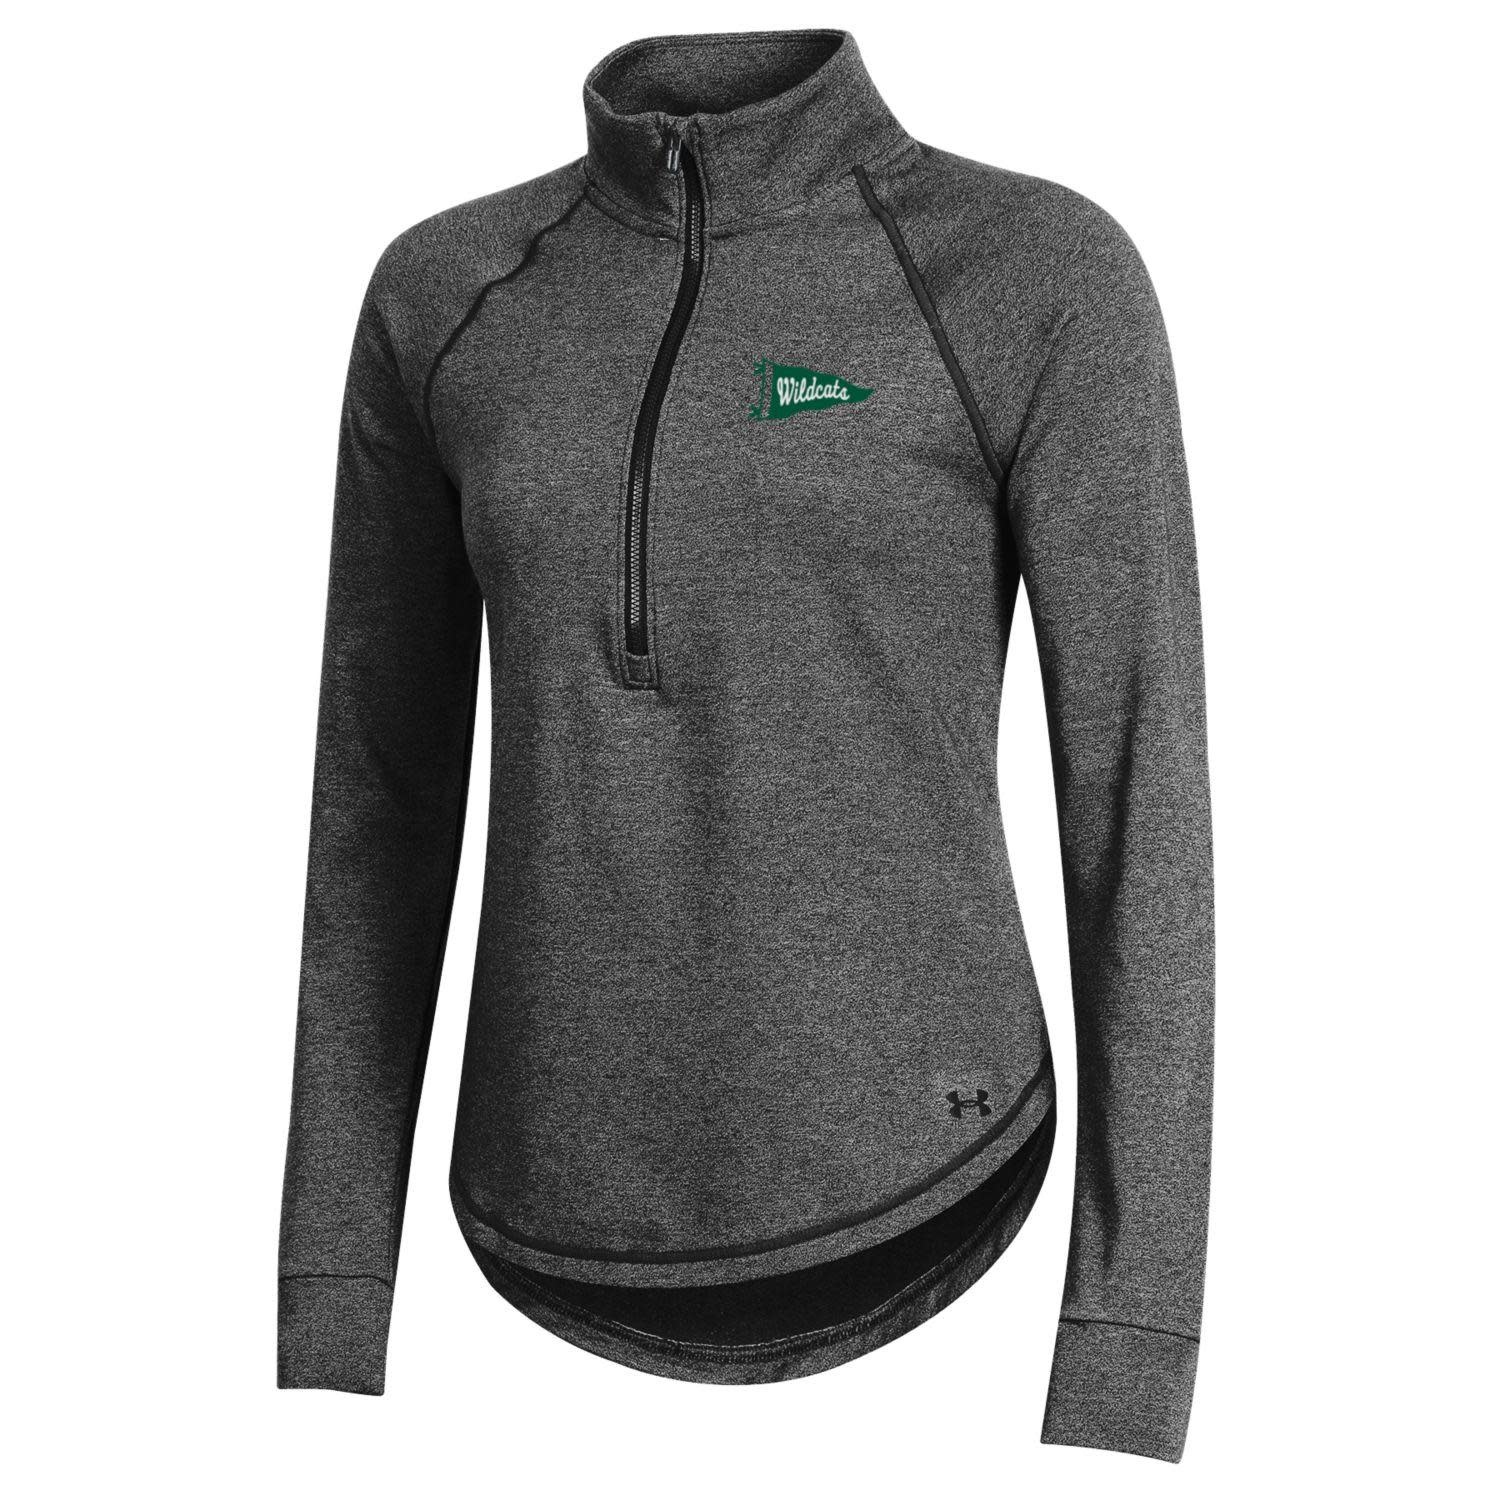 Under Armour Pullover: UA Ladies 1/4 Zip Charcoal with Flag/Script Wildcats